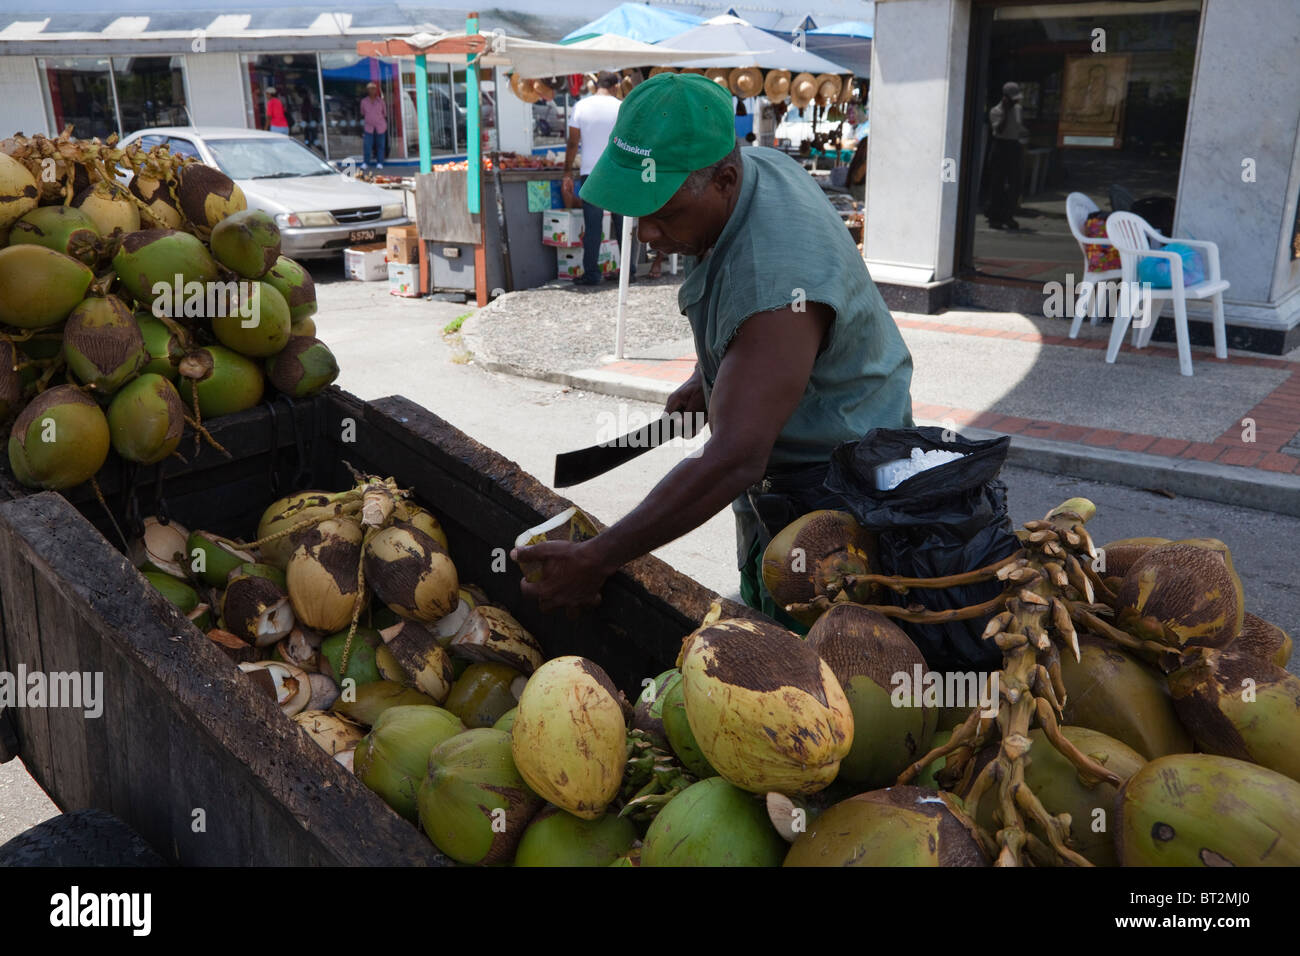 man cutting up coconuts to sell the milk from a barrow. Black Bedroom Furniture Sets. Home Design Ideas